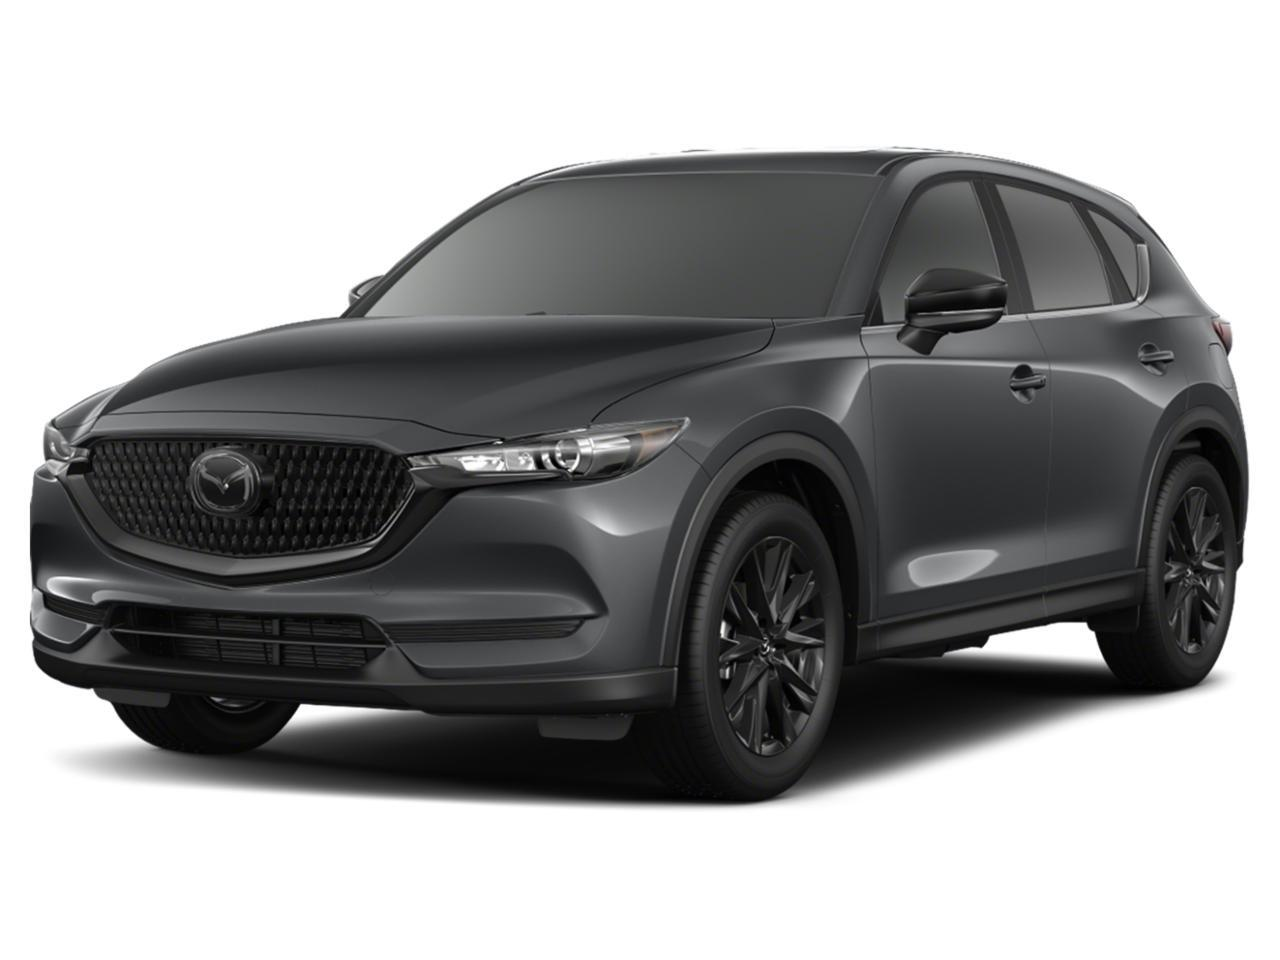 2021 Mazda CX-5 Carbon Edition Turbo City of Industry CA